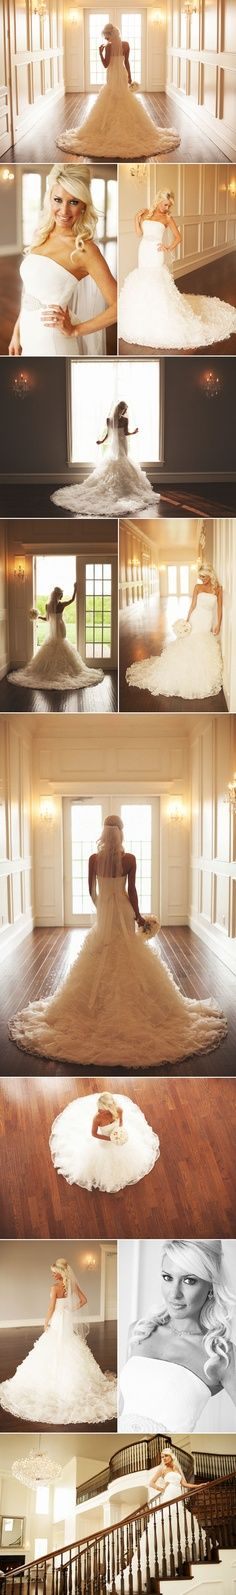 Not only is the dress amazing! But a few tips on how to pose on your big day! For more wedding inspiration check out other Veilability boards or www.veilability.com.au